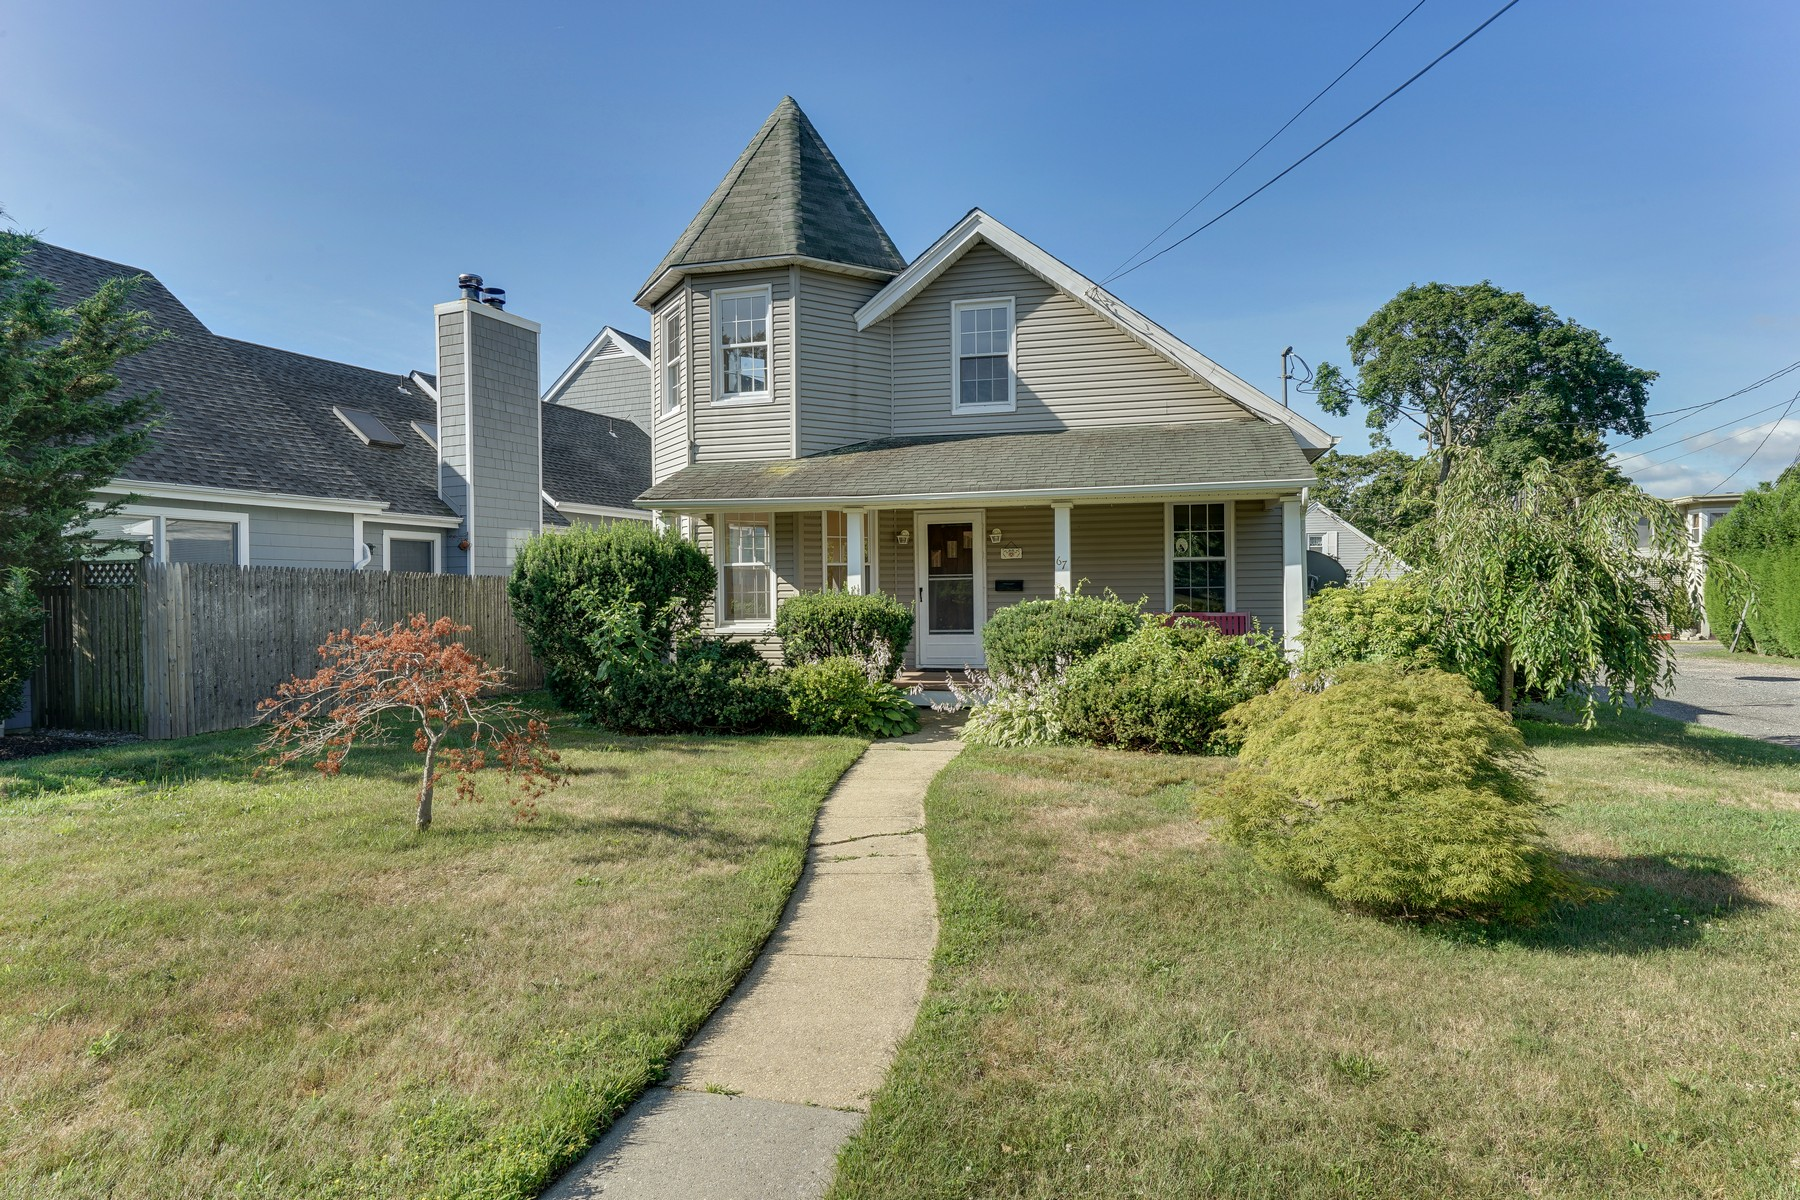 Multi-Family Home for Sale at Two Family House 67-67 12 Sea Girt Ave Manasquan, New Jersey 08736 United States